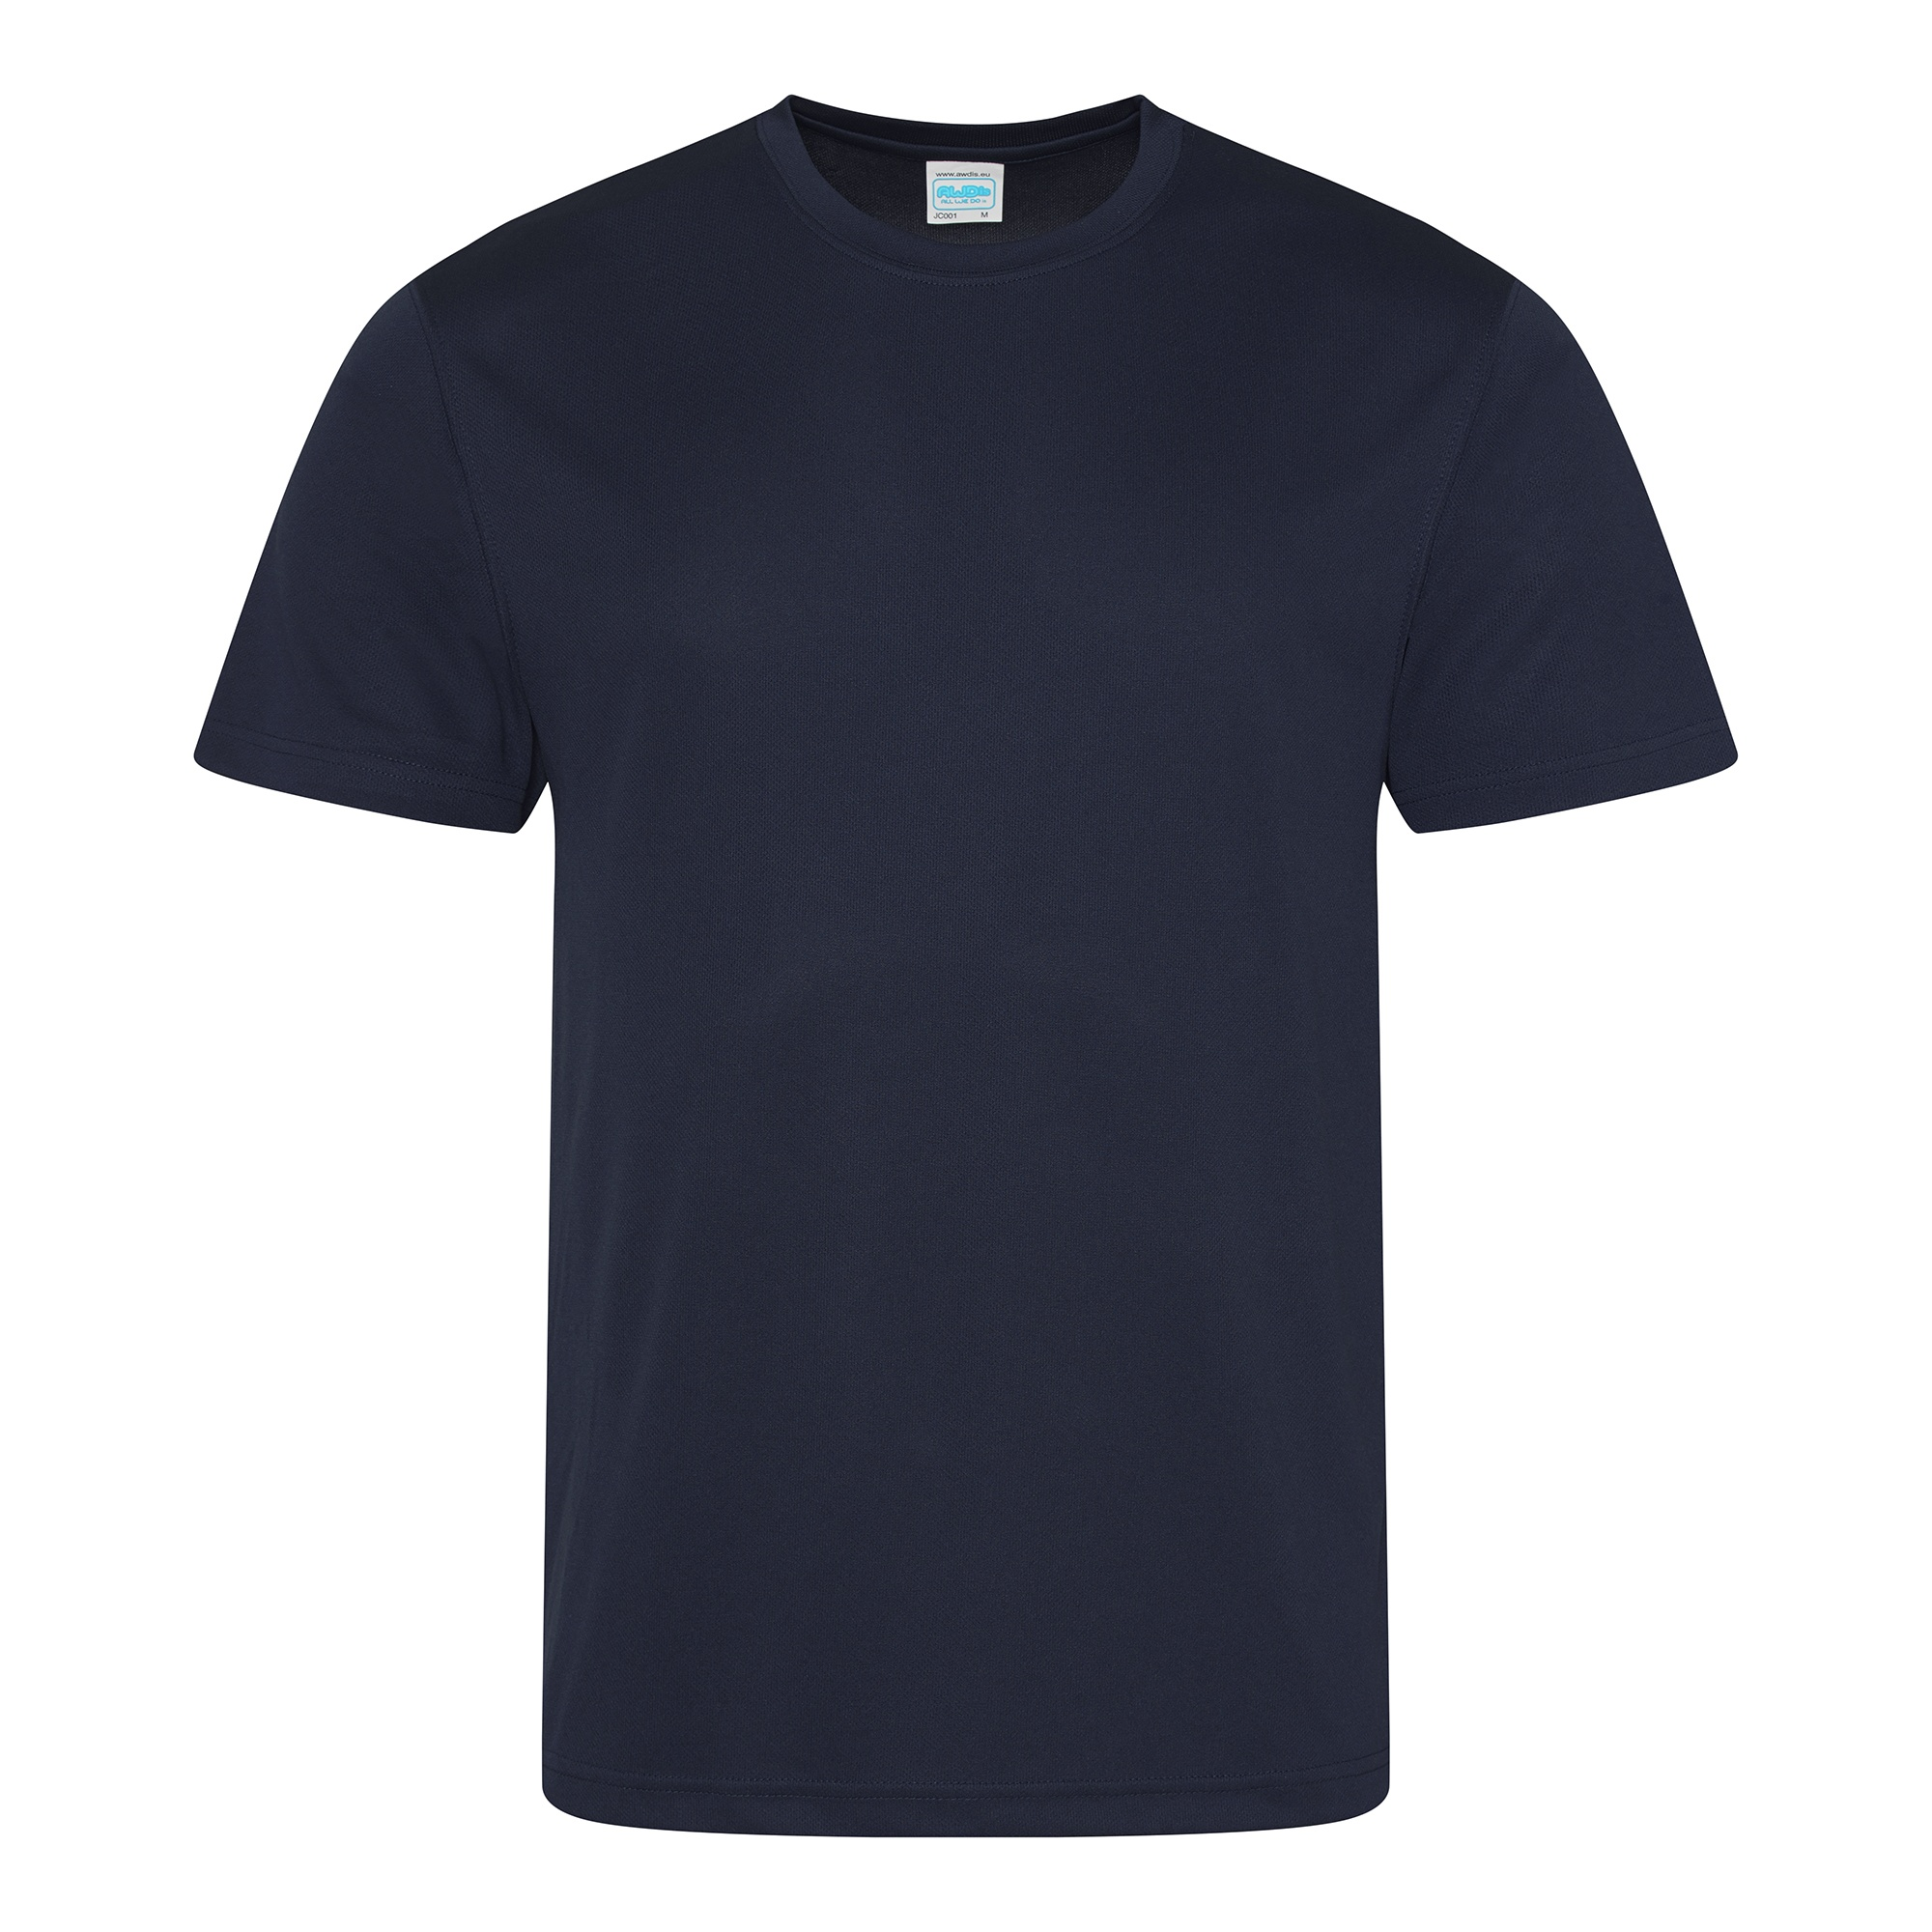 Just cool mens performance plain t shirt ebay for Great shirts for guys